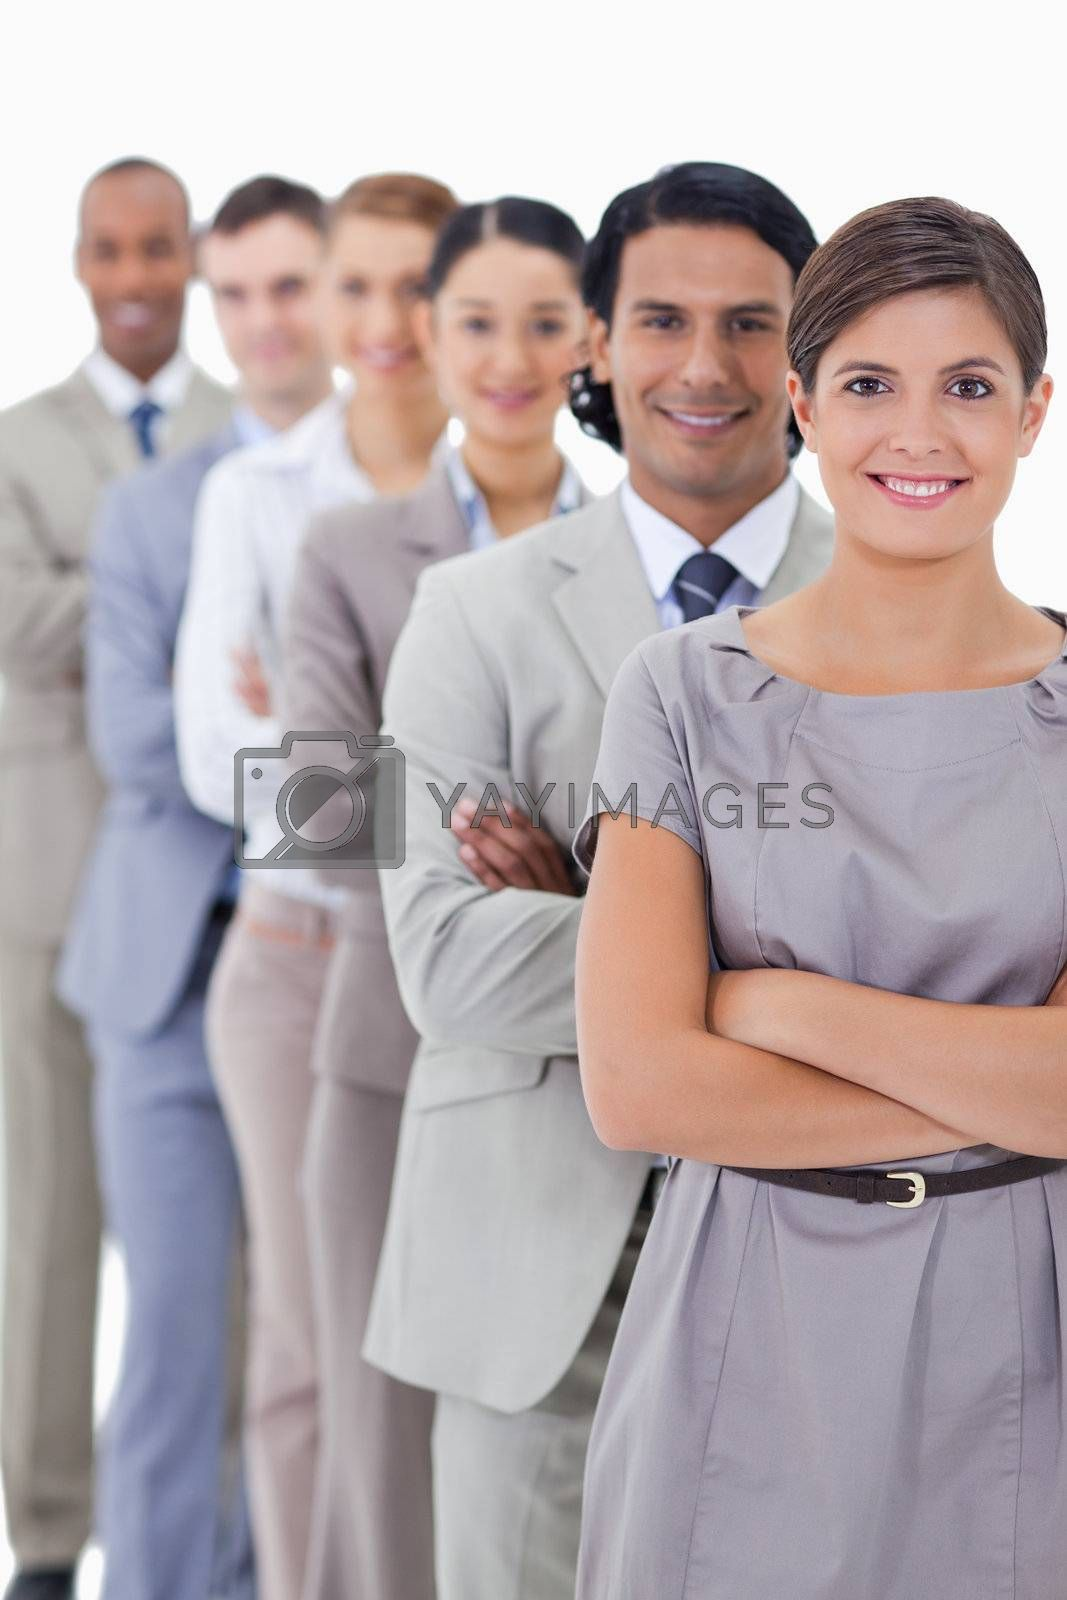 Close-up of workmates smiling in a single line crossing their arms with focus on the first woman